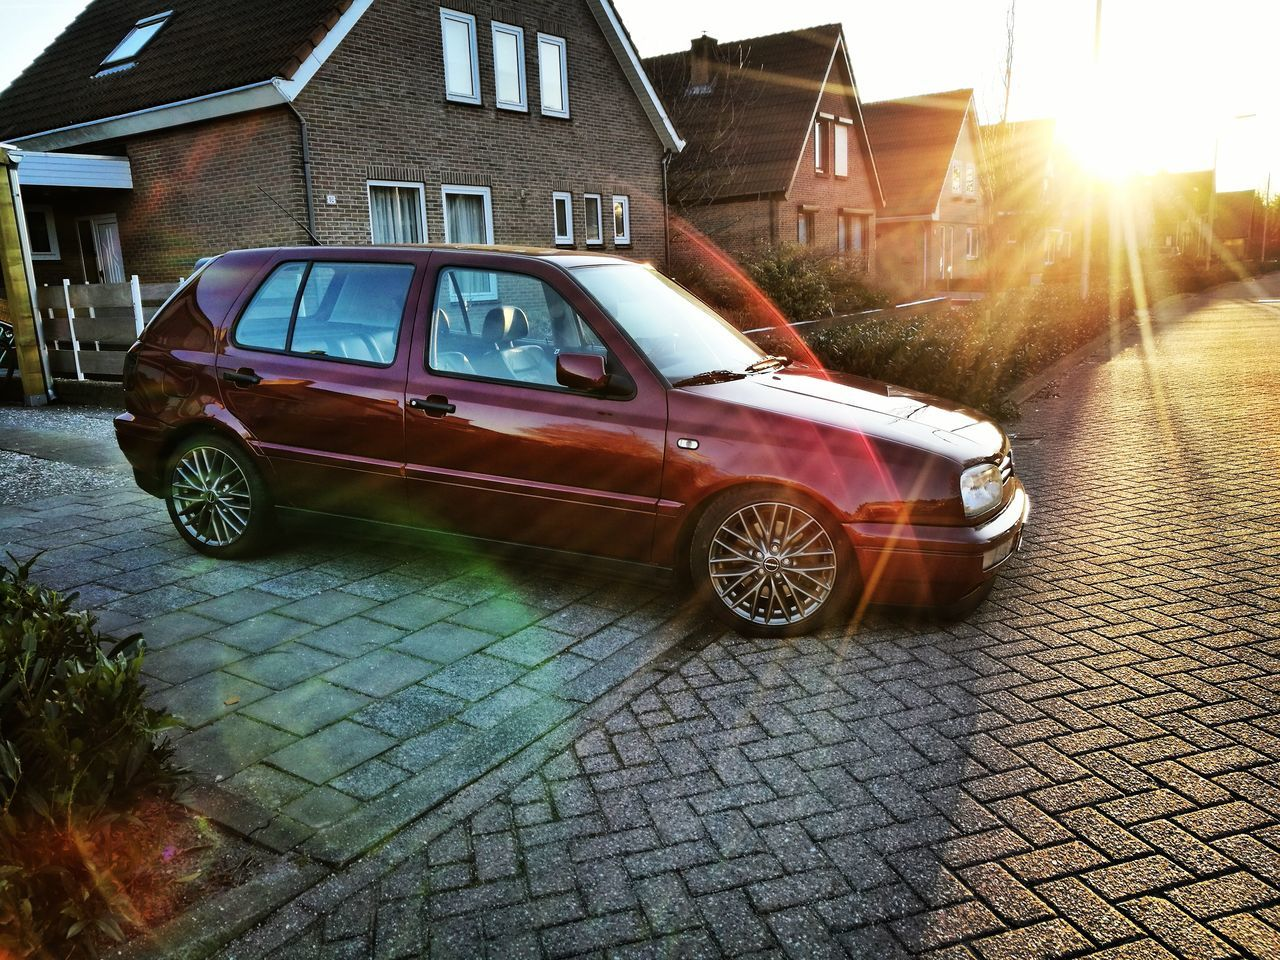 Vr6 Vr6turbo VW Mk3 Golf Mk3 Vr Flawless Shining Classic Classic Car Perfection Old-fashioned Car Sunlight Transportation Sunset Outdoors City Water No People Day Showroom Photo GTI Adapted To The City